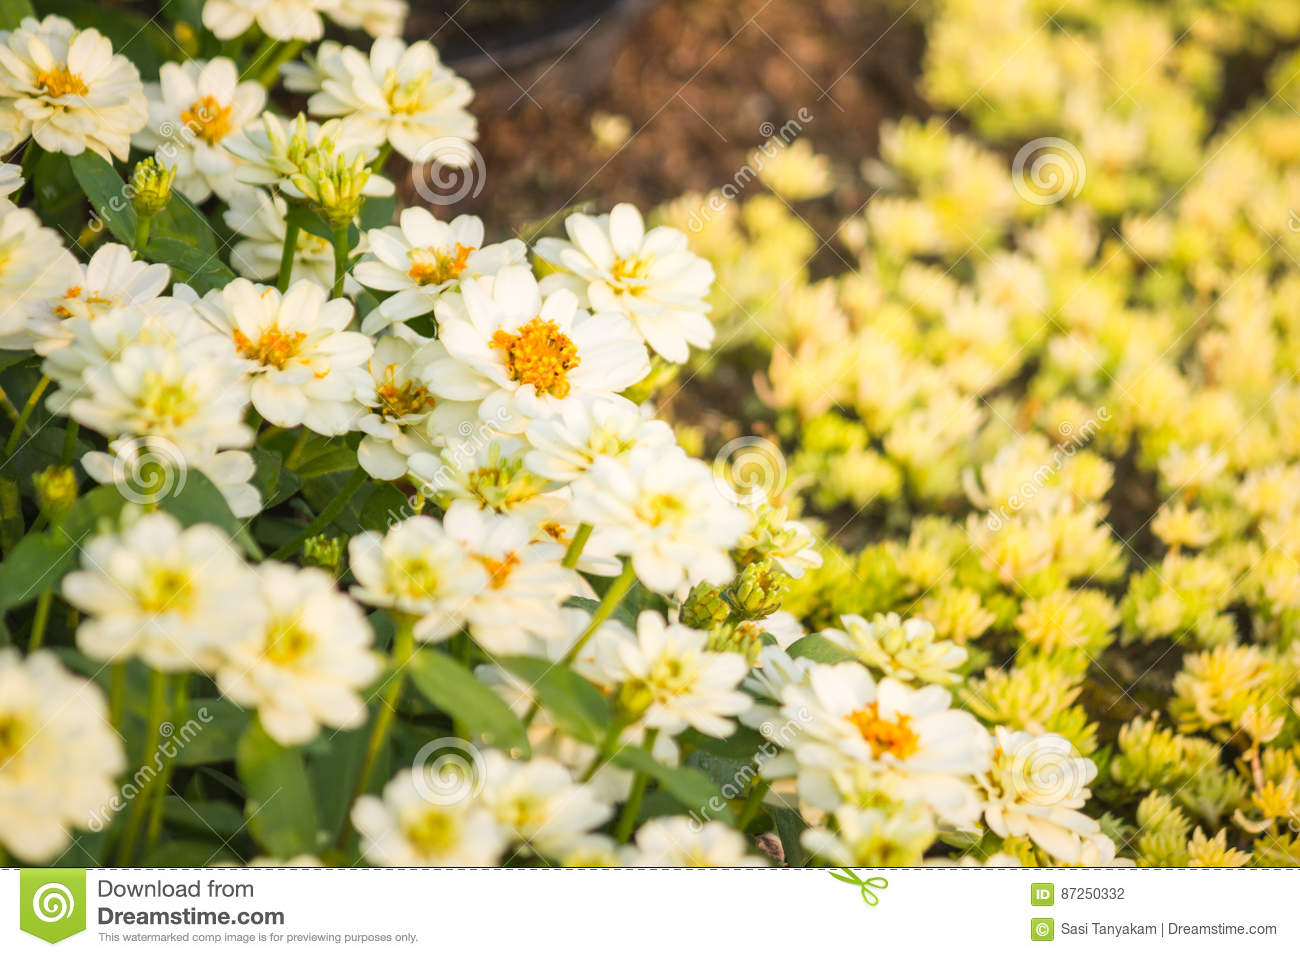 Little daisy clusters flowers of wallpaper background stock photo download little daisy clusters flowers of wallpaper background stock photo image of pretty izmirmasajfo